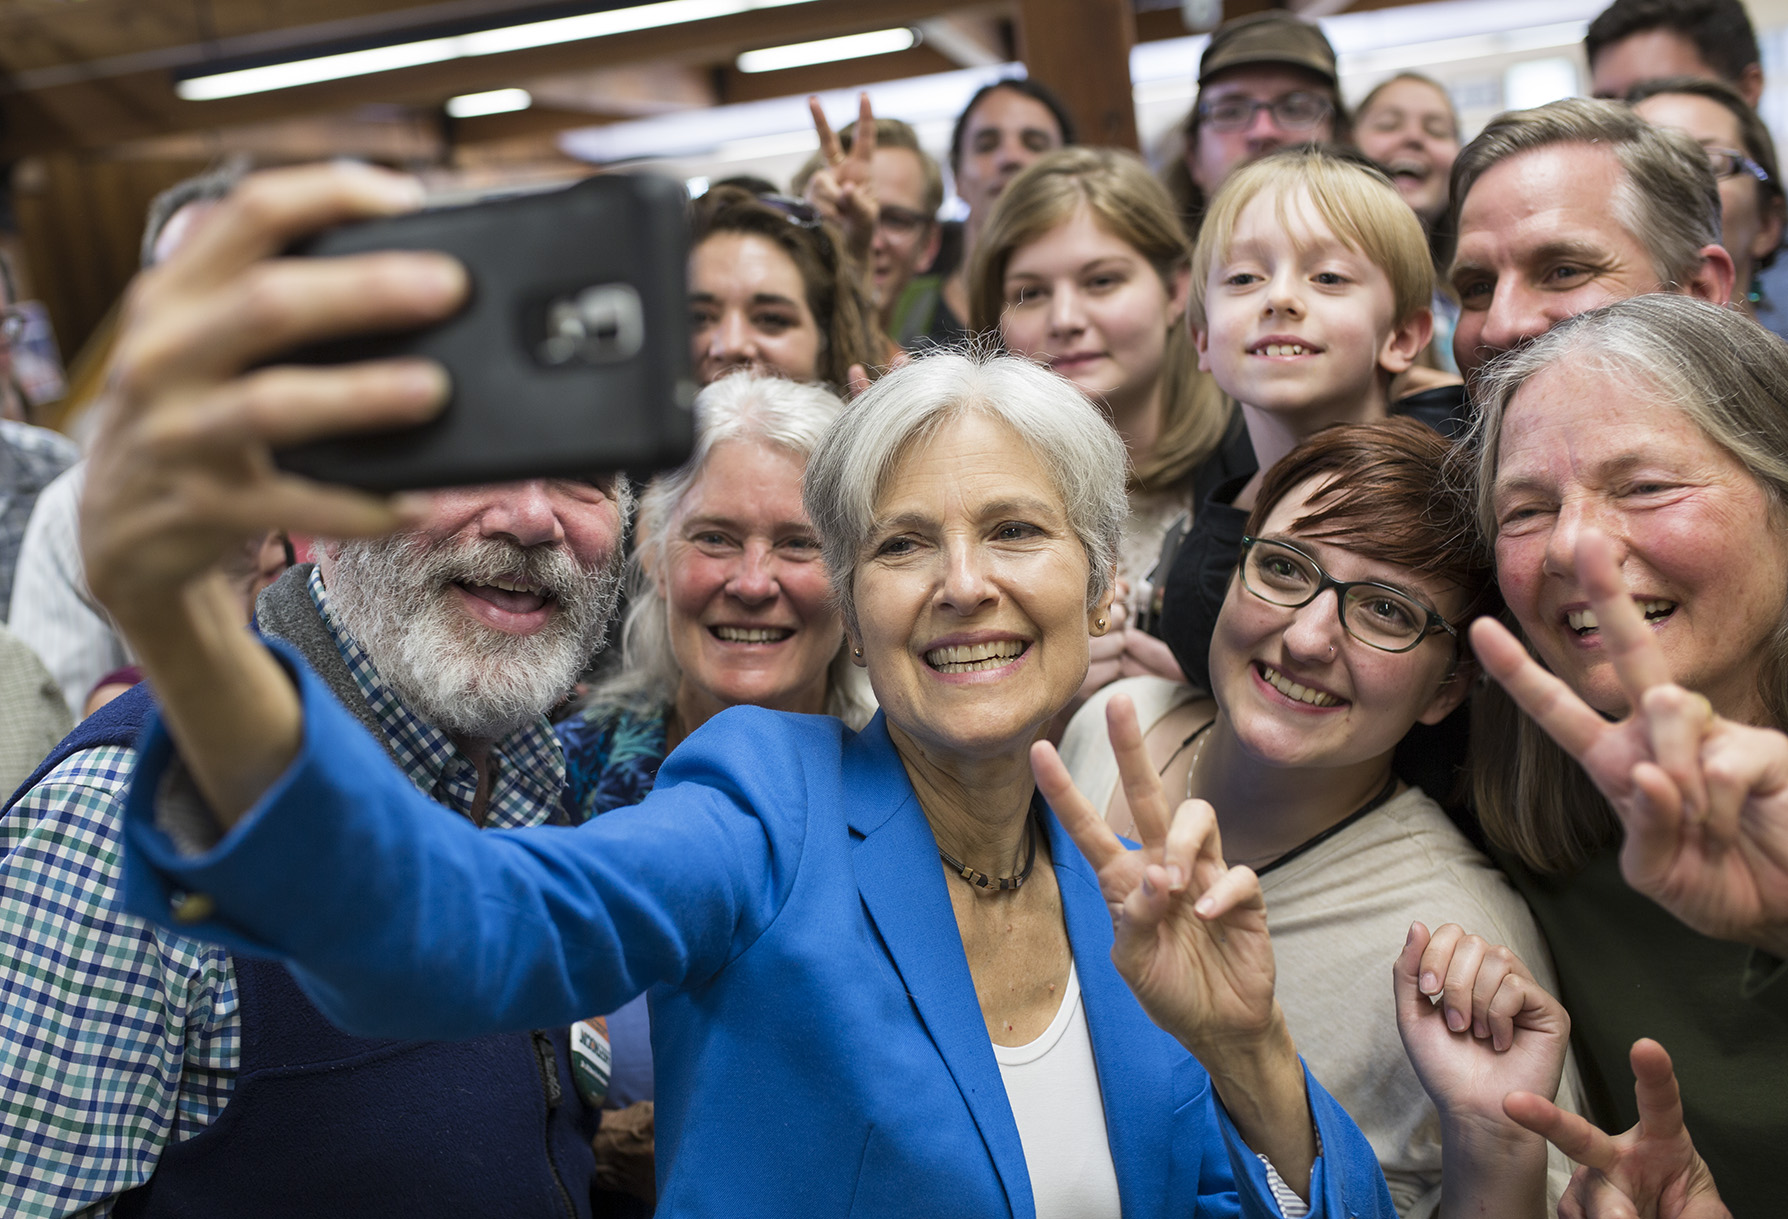 If Jill Stein is so smart, why does she keep running? - The